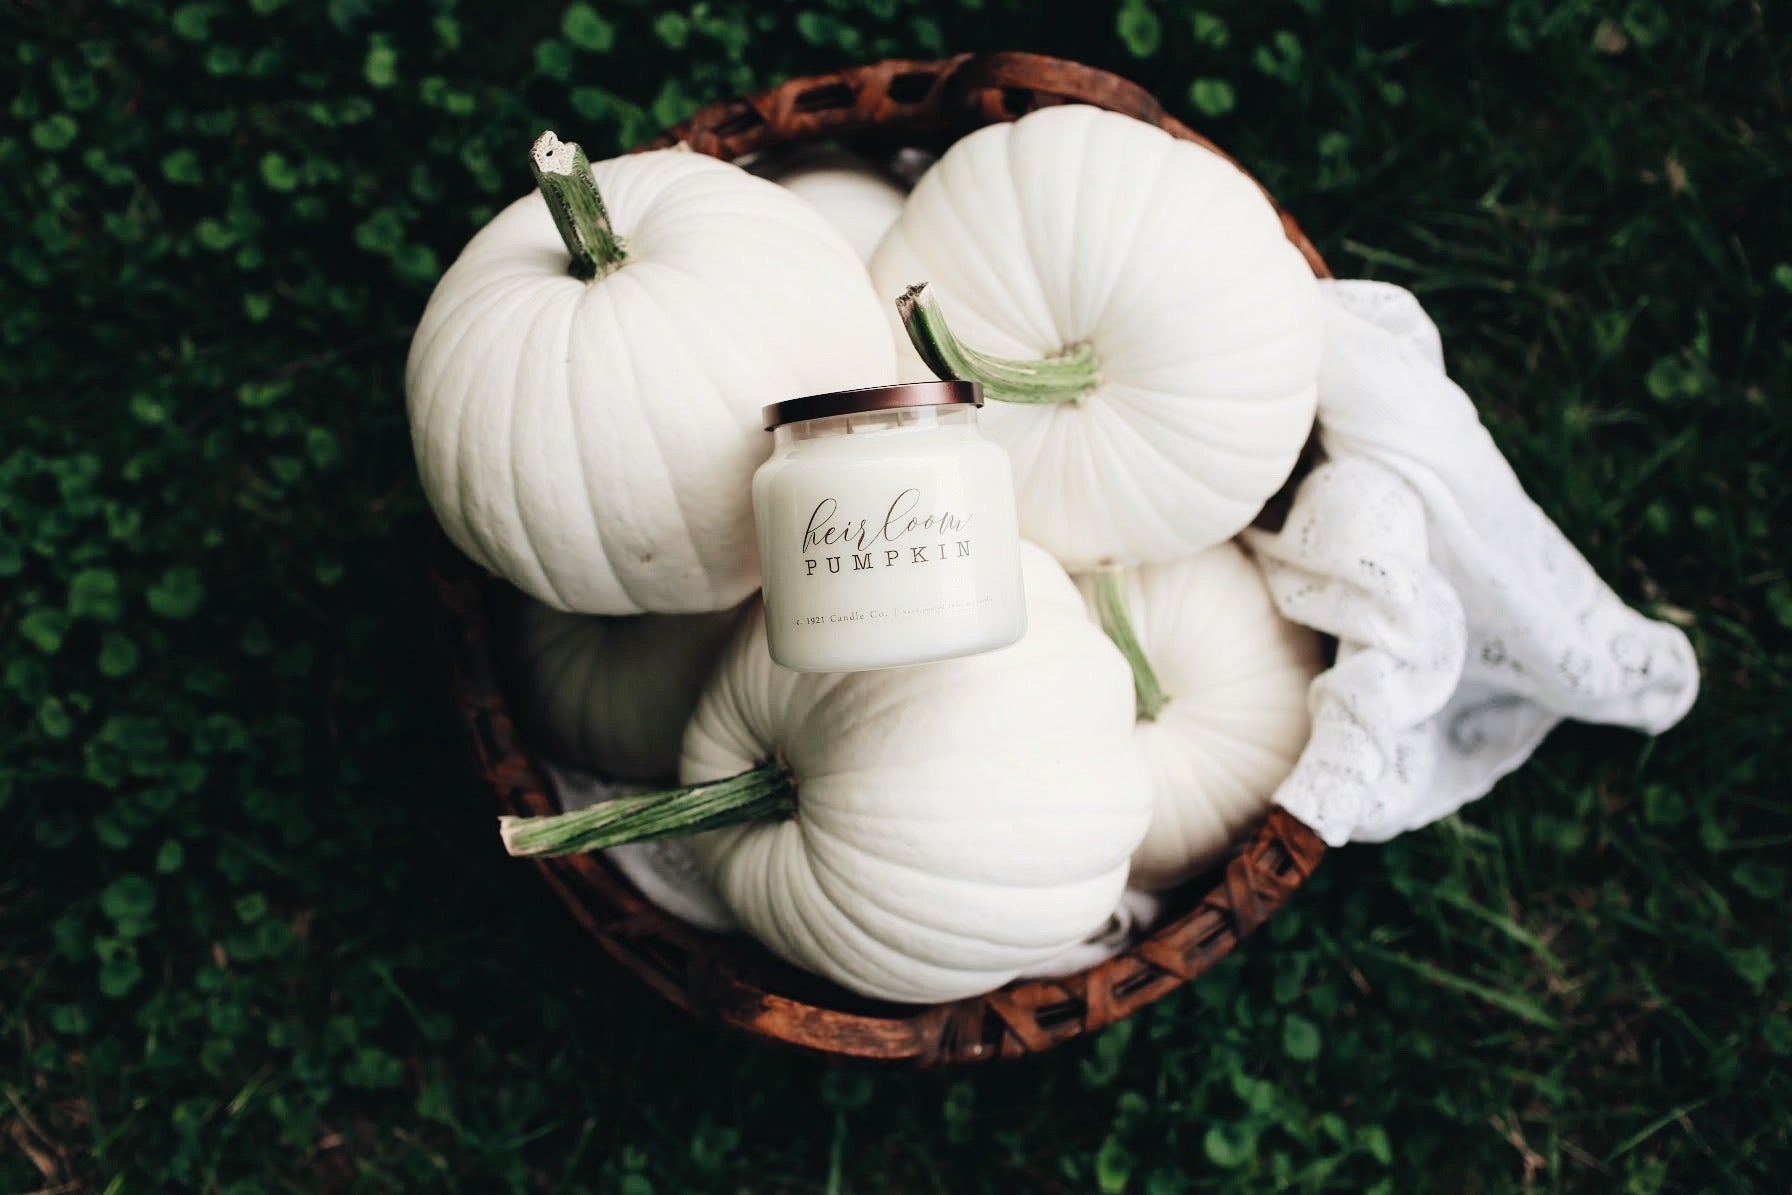 Heirloom Pumpkin